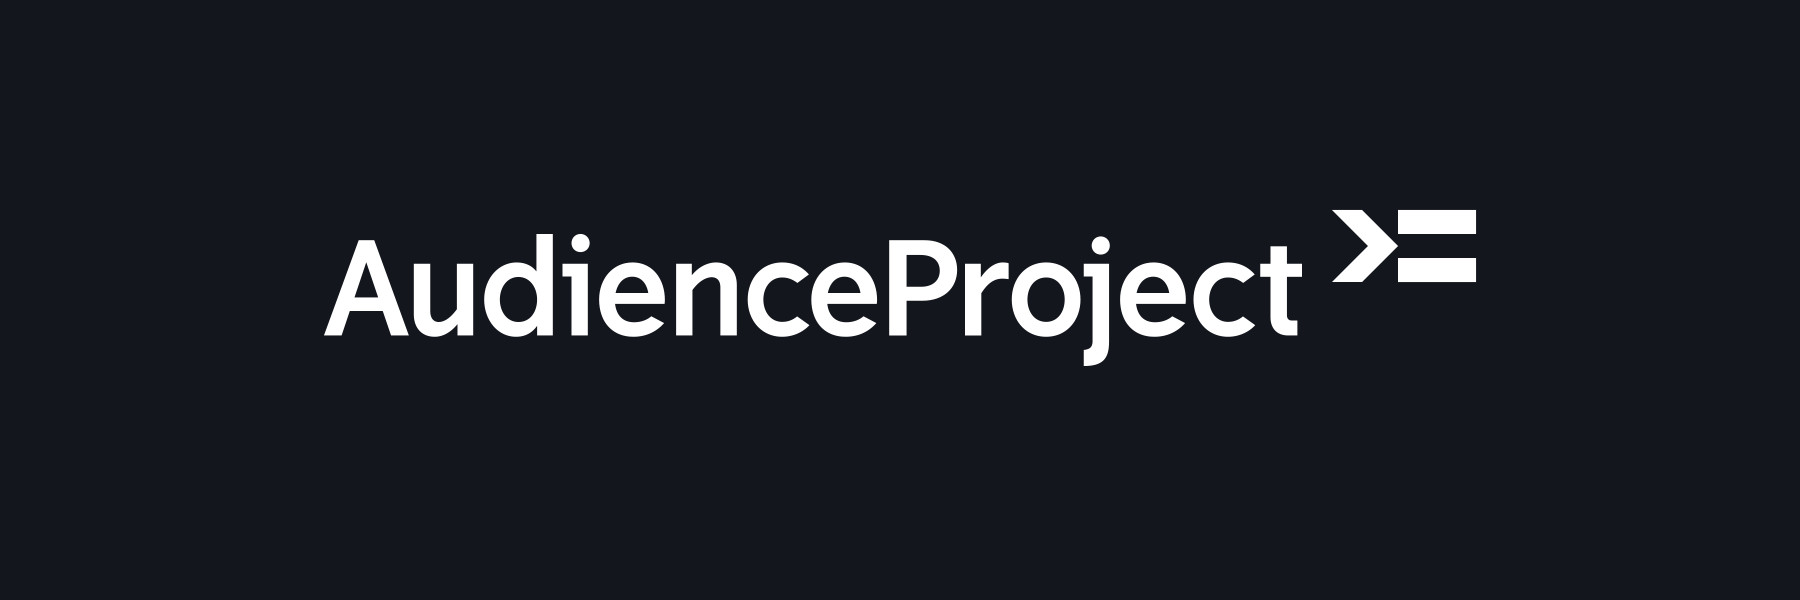 AudienceProject logo in black on white